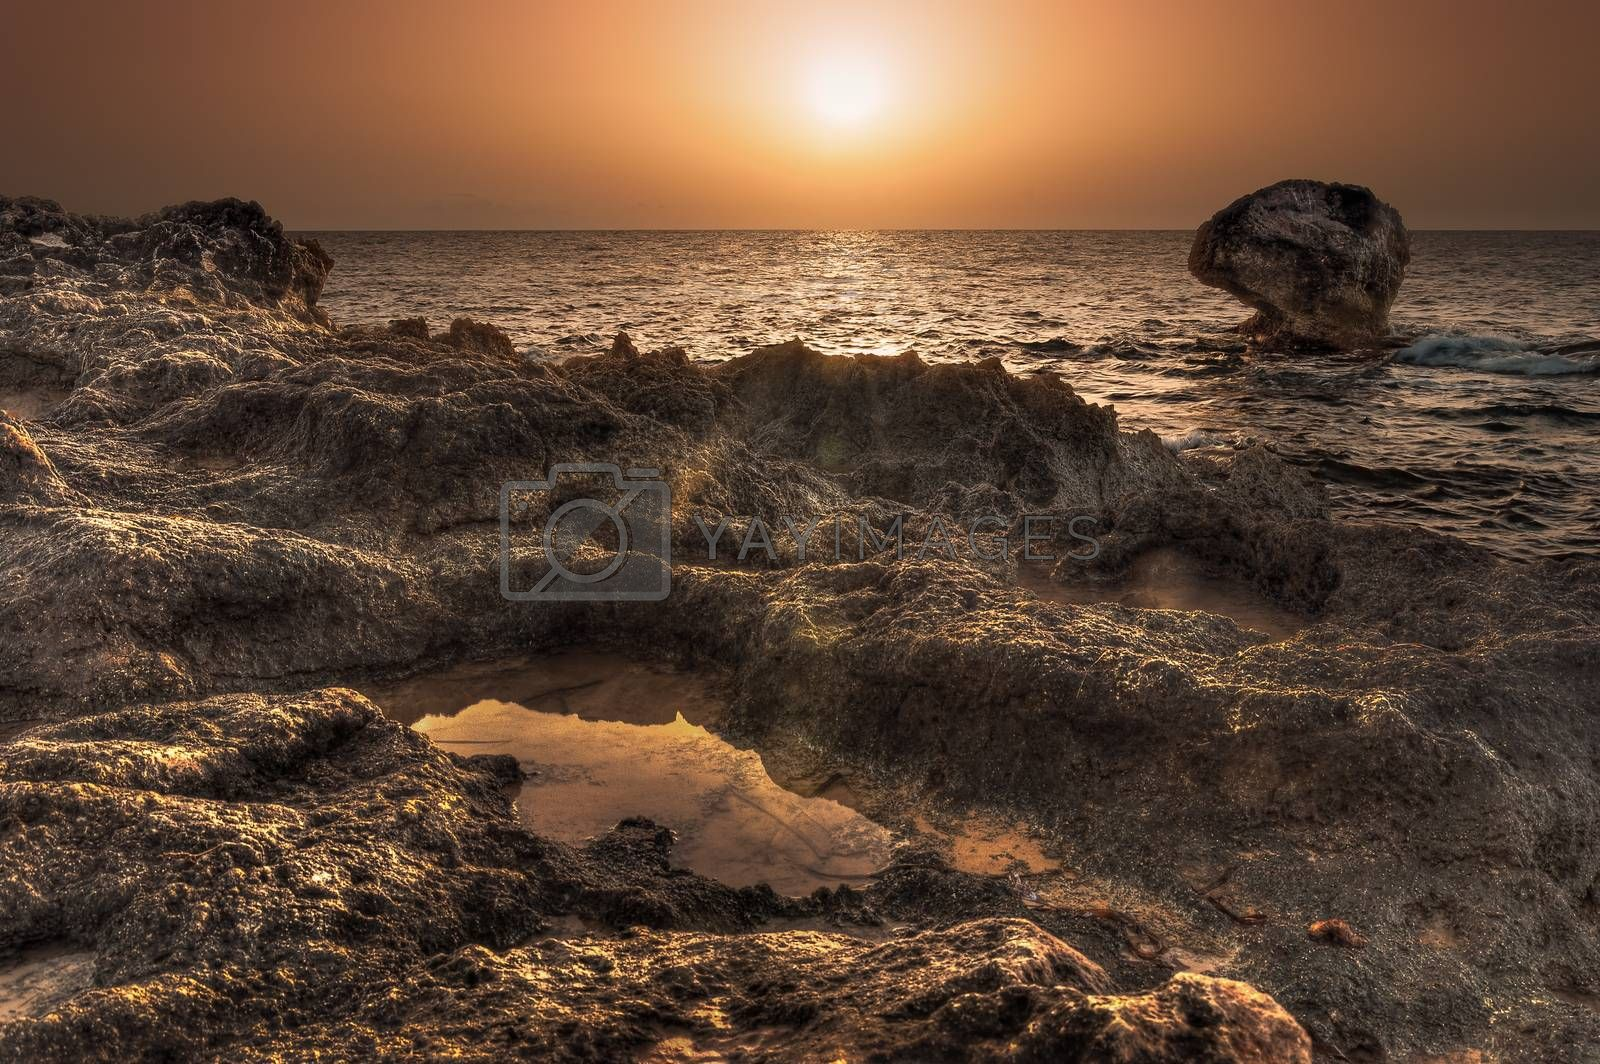 Royalty free image of sunset over the sea by Kayco